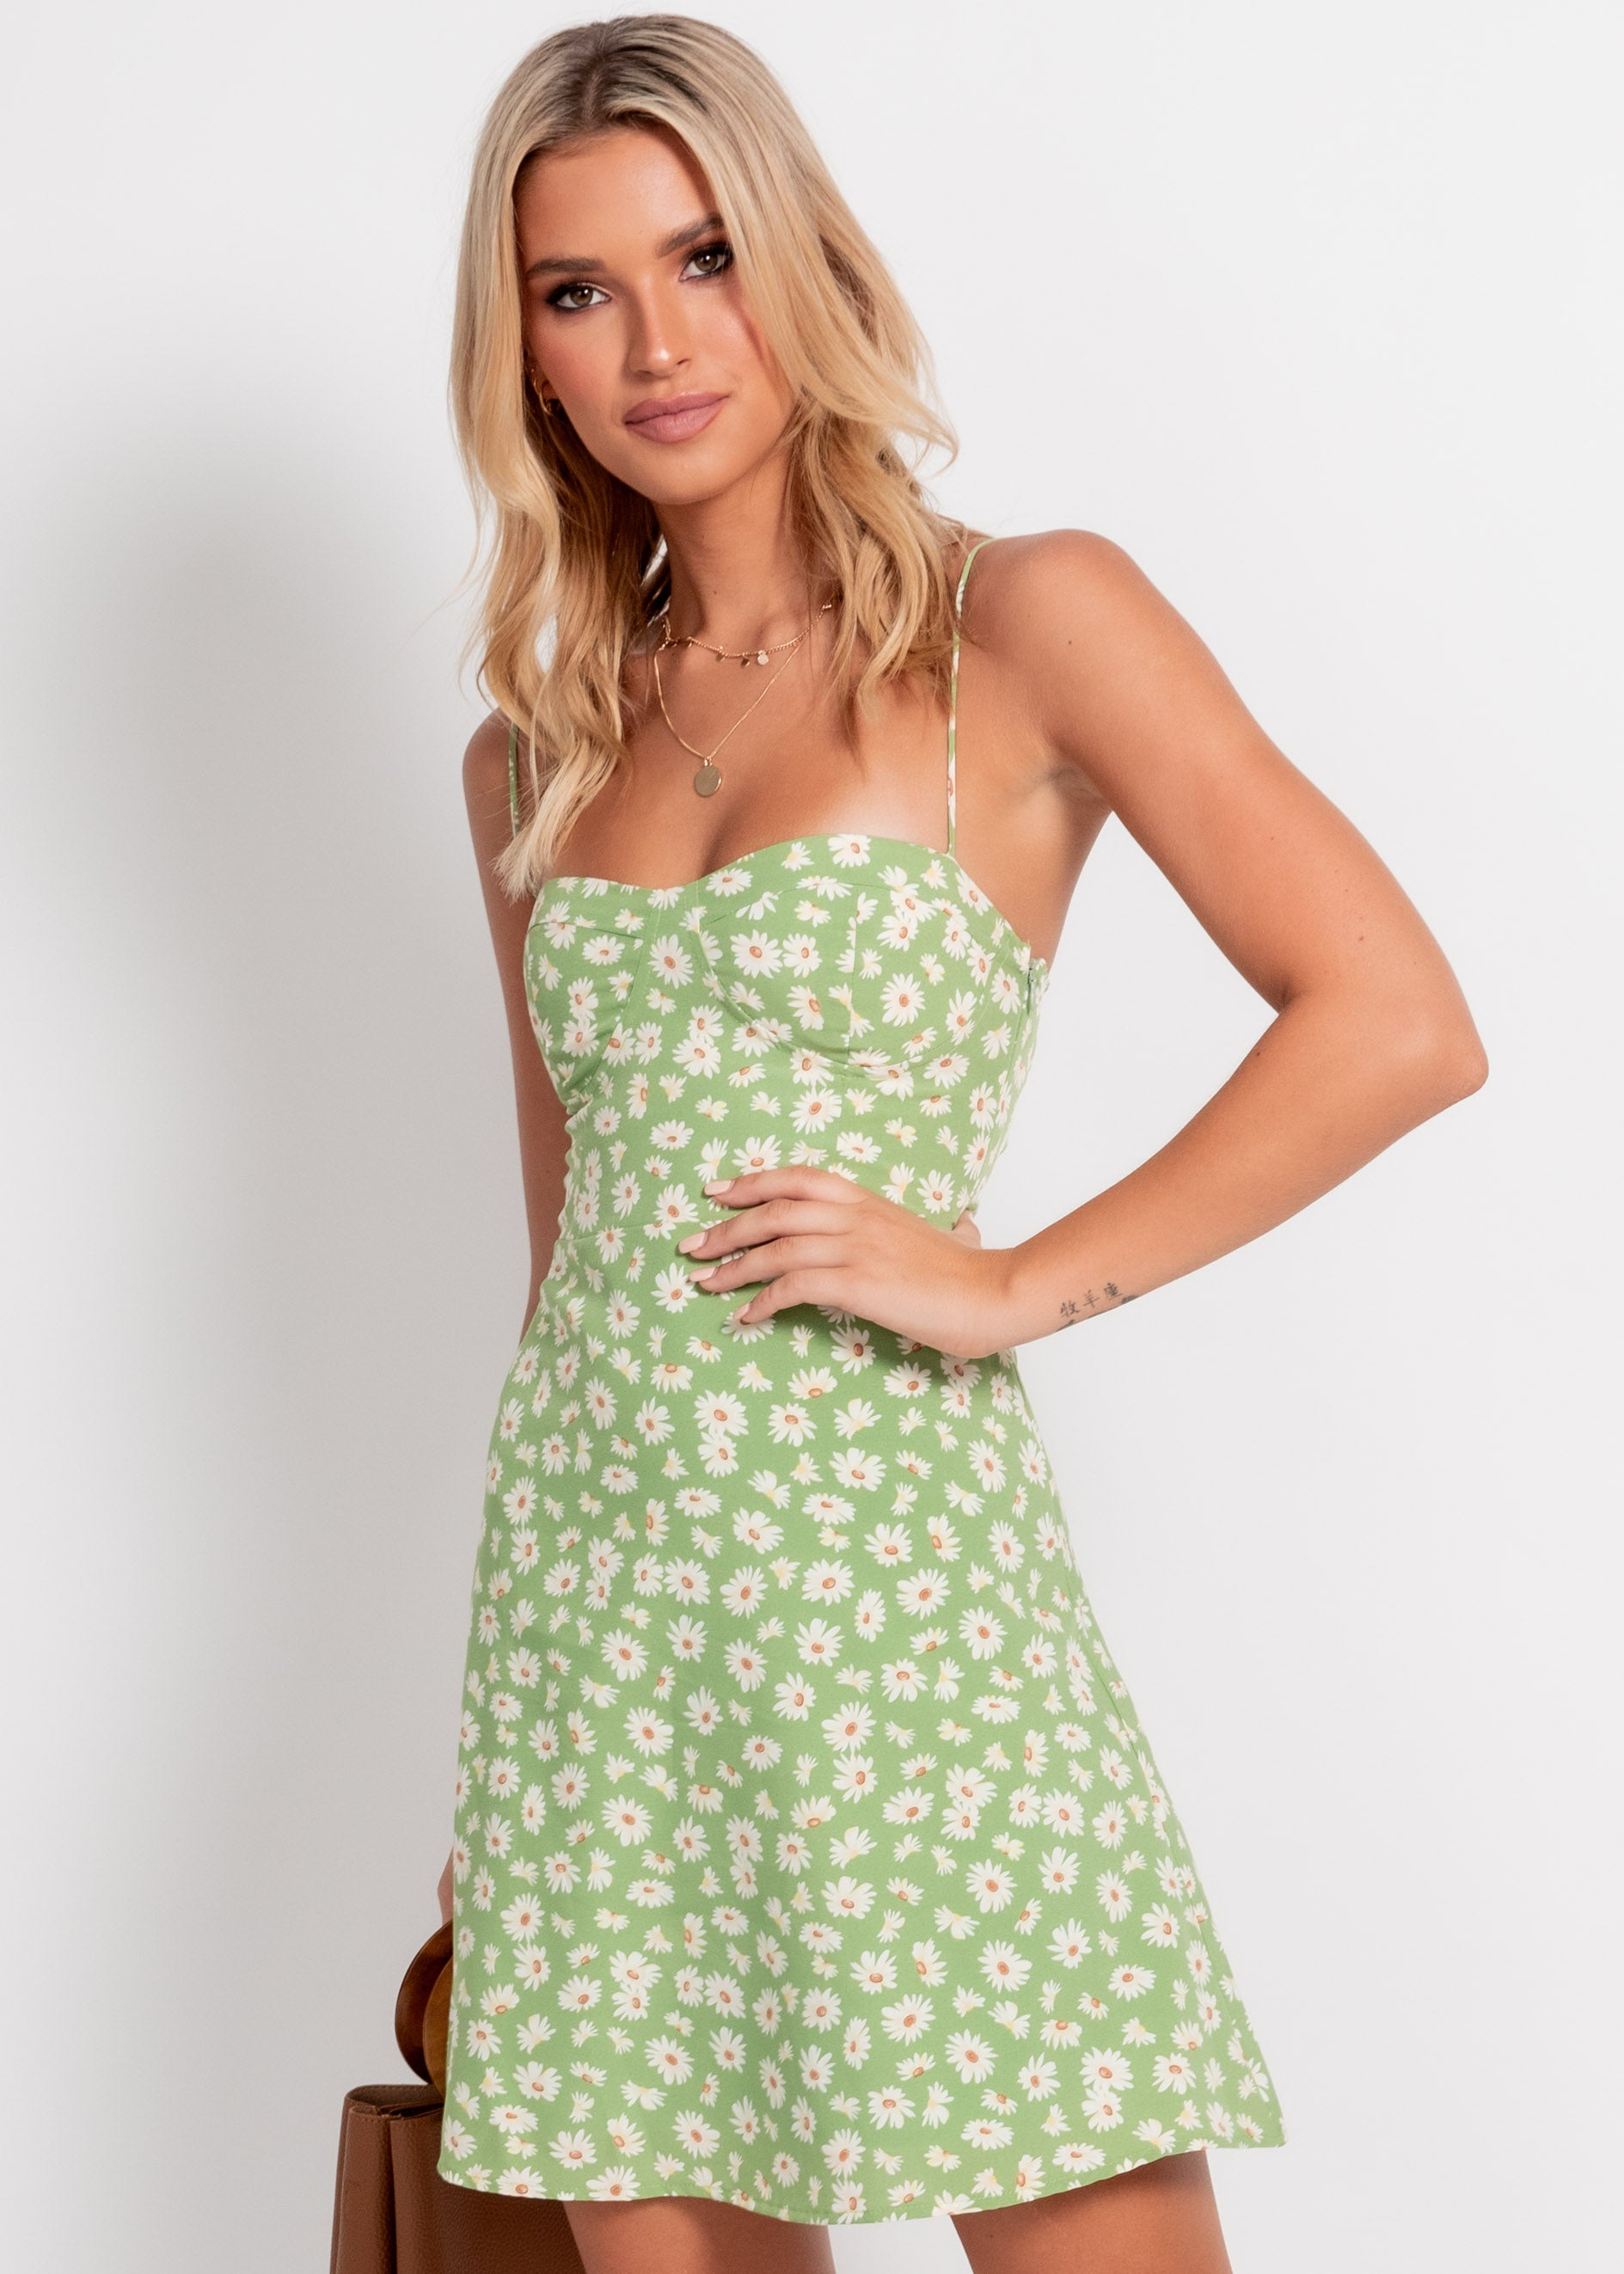 Stole The Show Dress - Green Floral